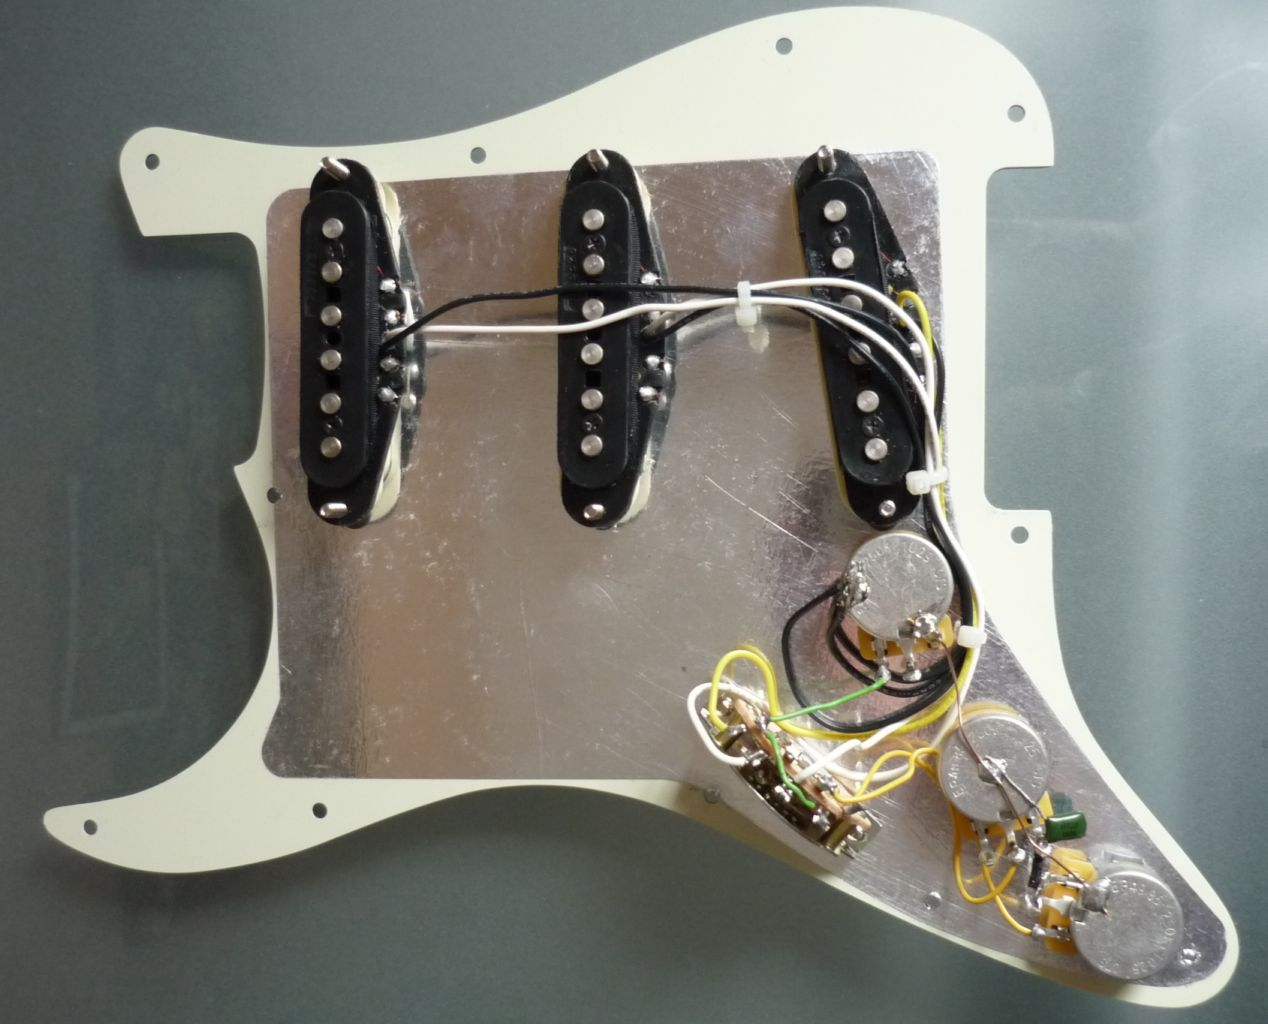 Wiring Diagram For Stratocaster Pickups Schematics Diagrams Hsh 5 Way Fender Switch Imgs Noiseless Guitar Strat